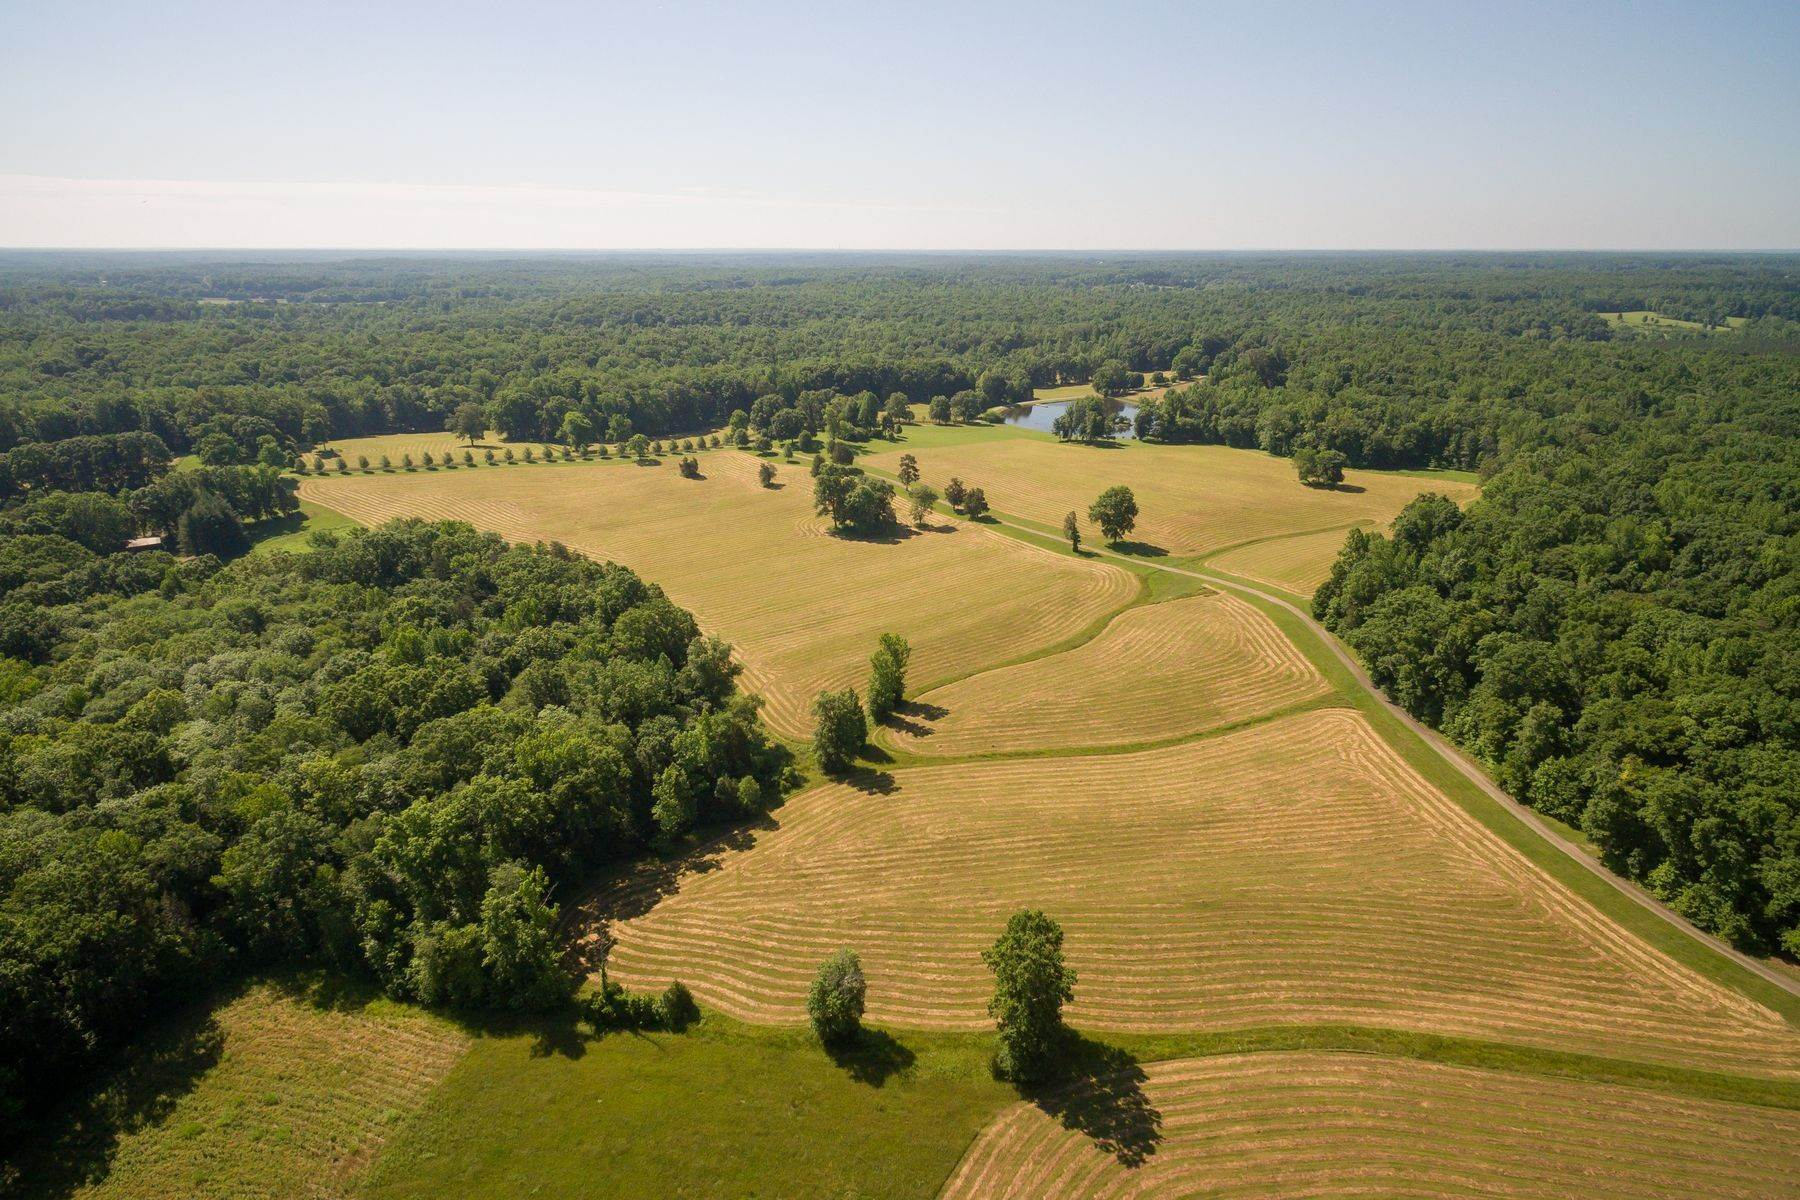 Property for Sale at Gardner Farm 792 E Old Mountain Rd, Mineral, Virginia, 23117 United States